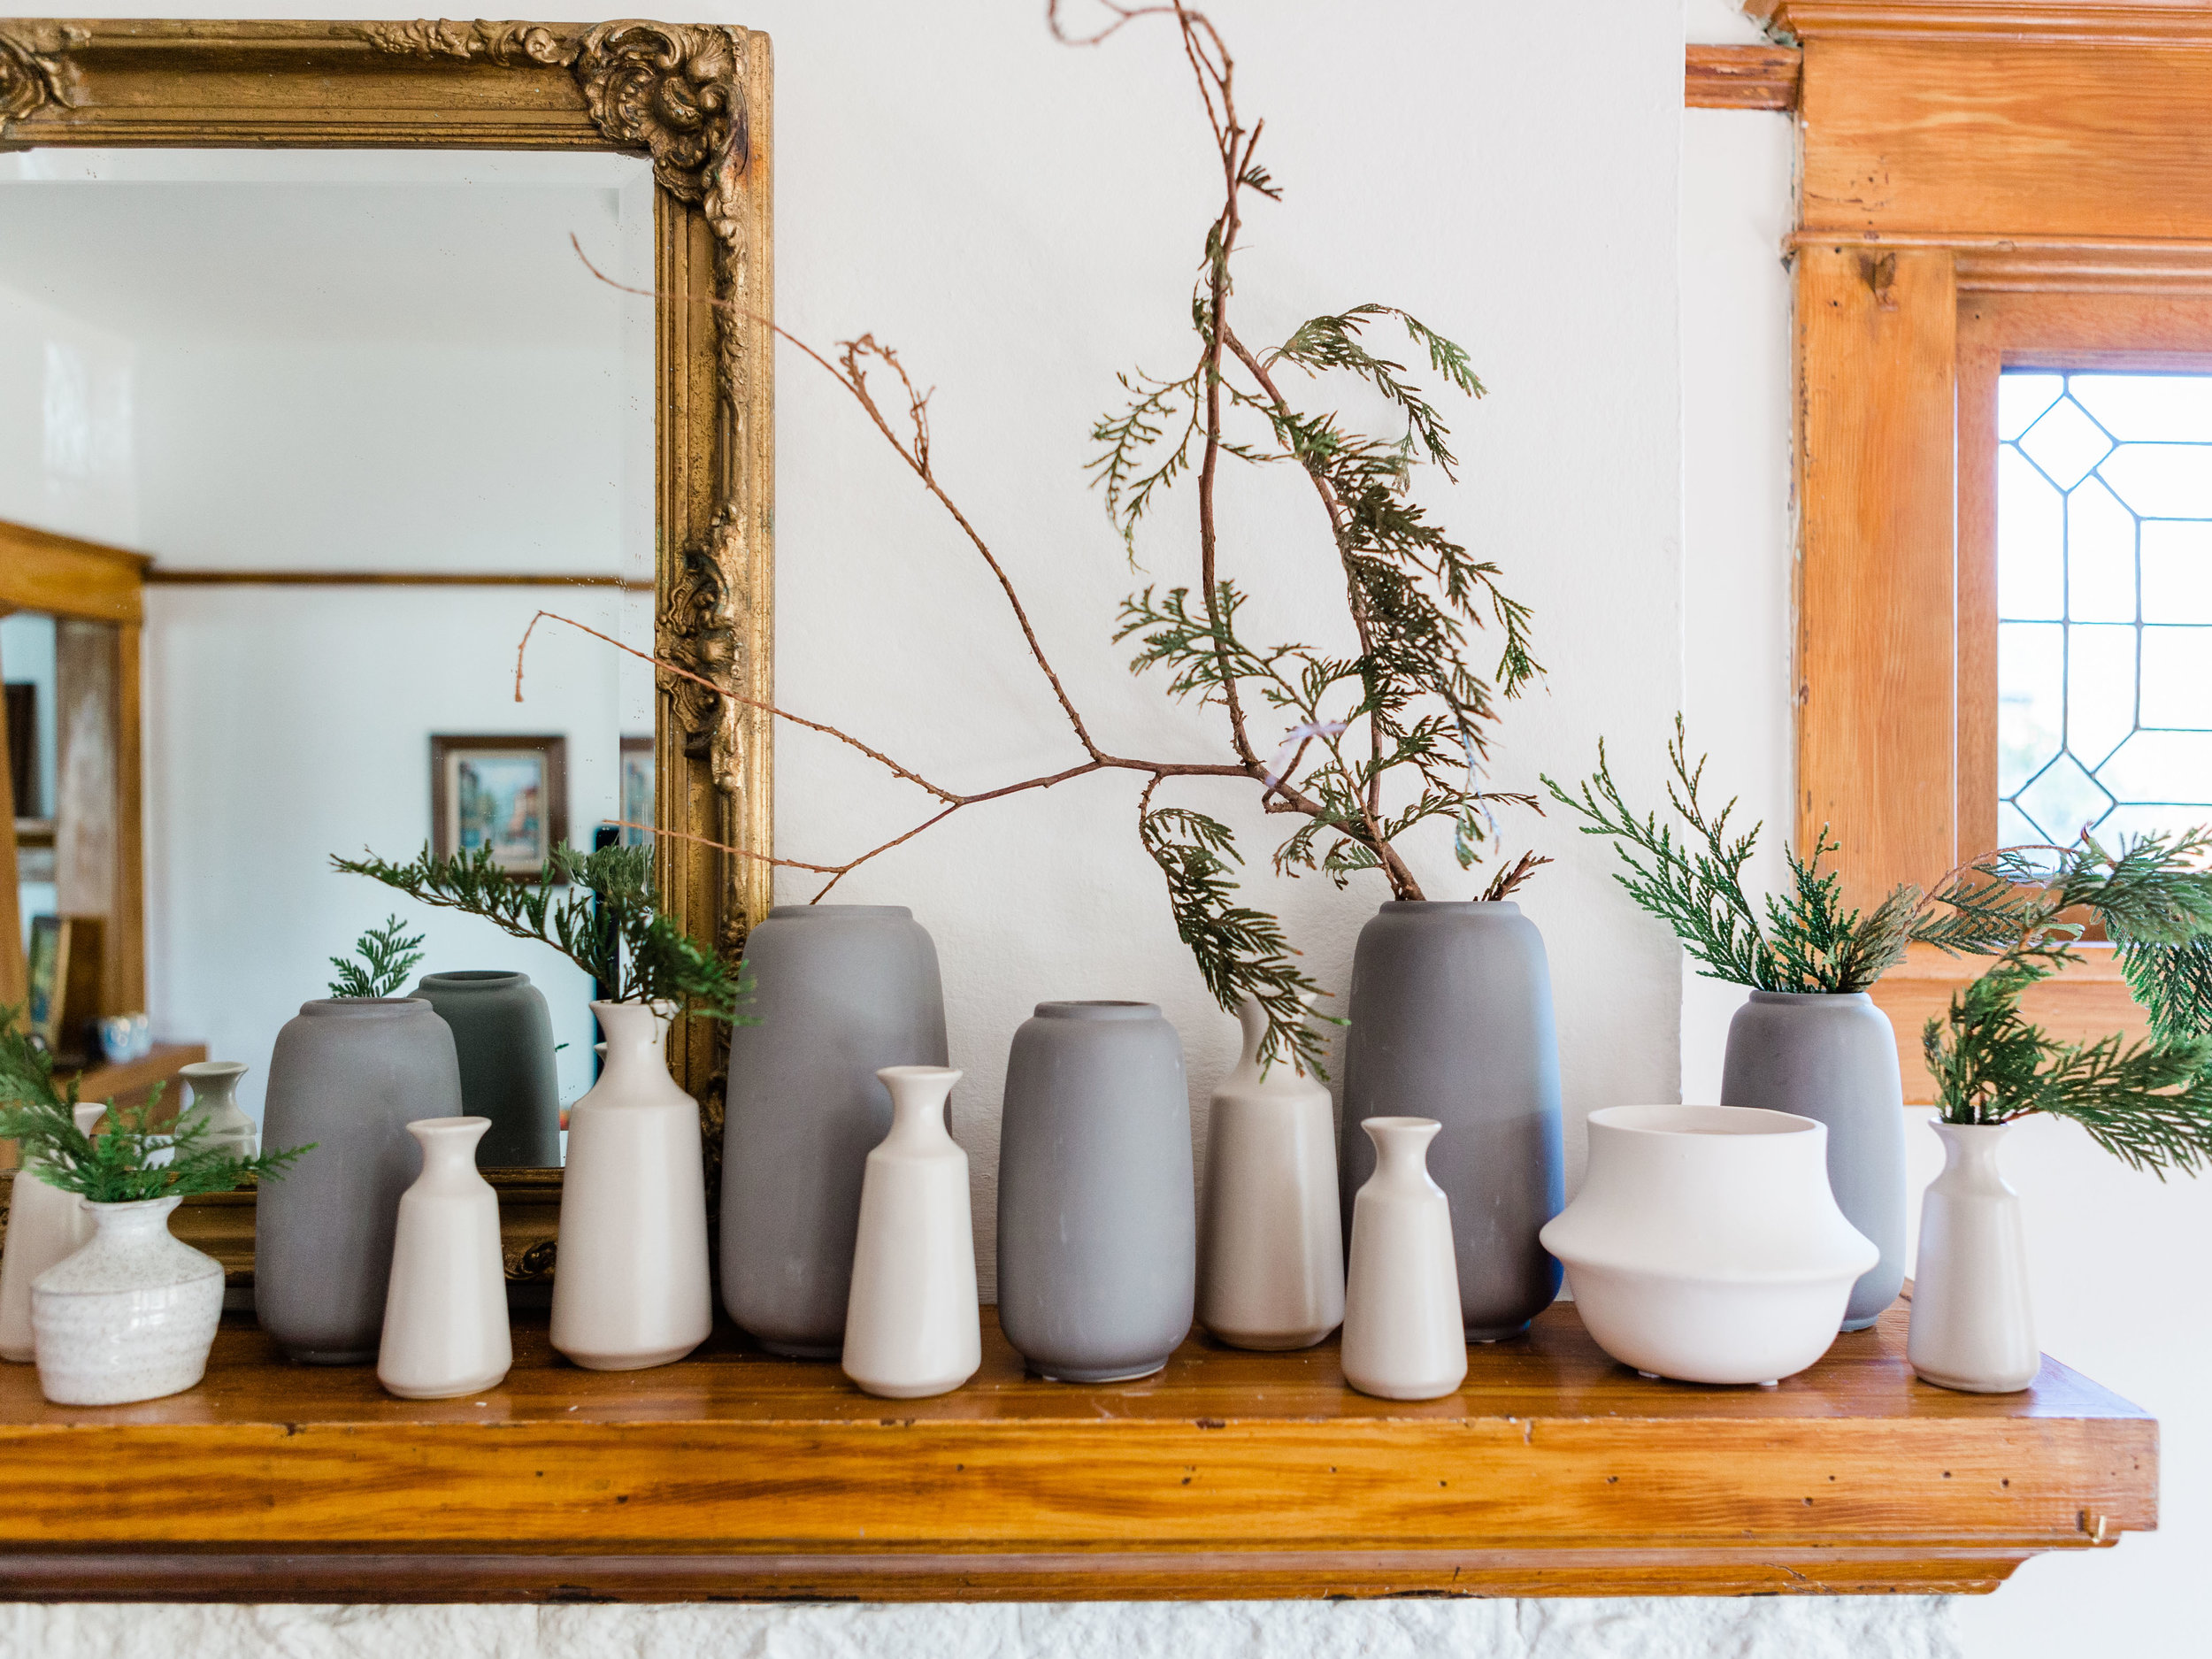 Minimal and simple grey and white ceramic vases from Foragedhome.com